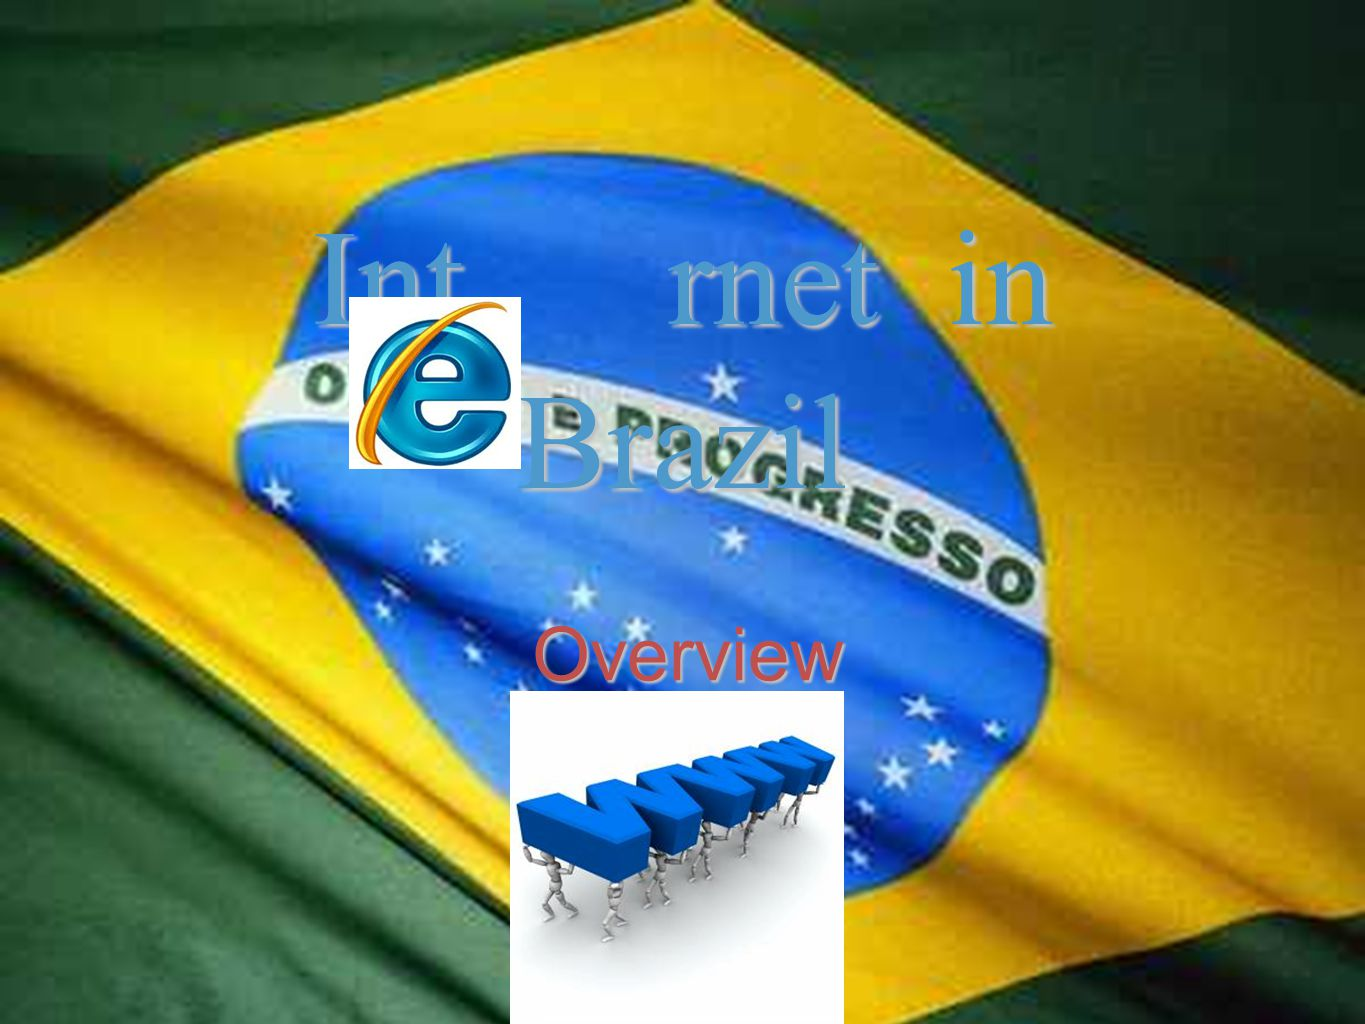 Overview Int rnet in Brazil